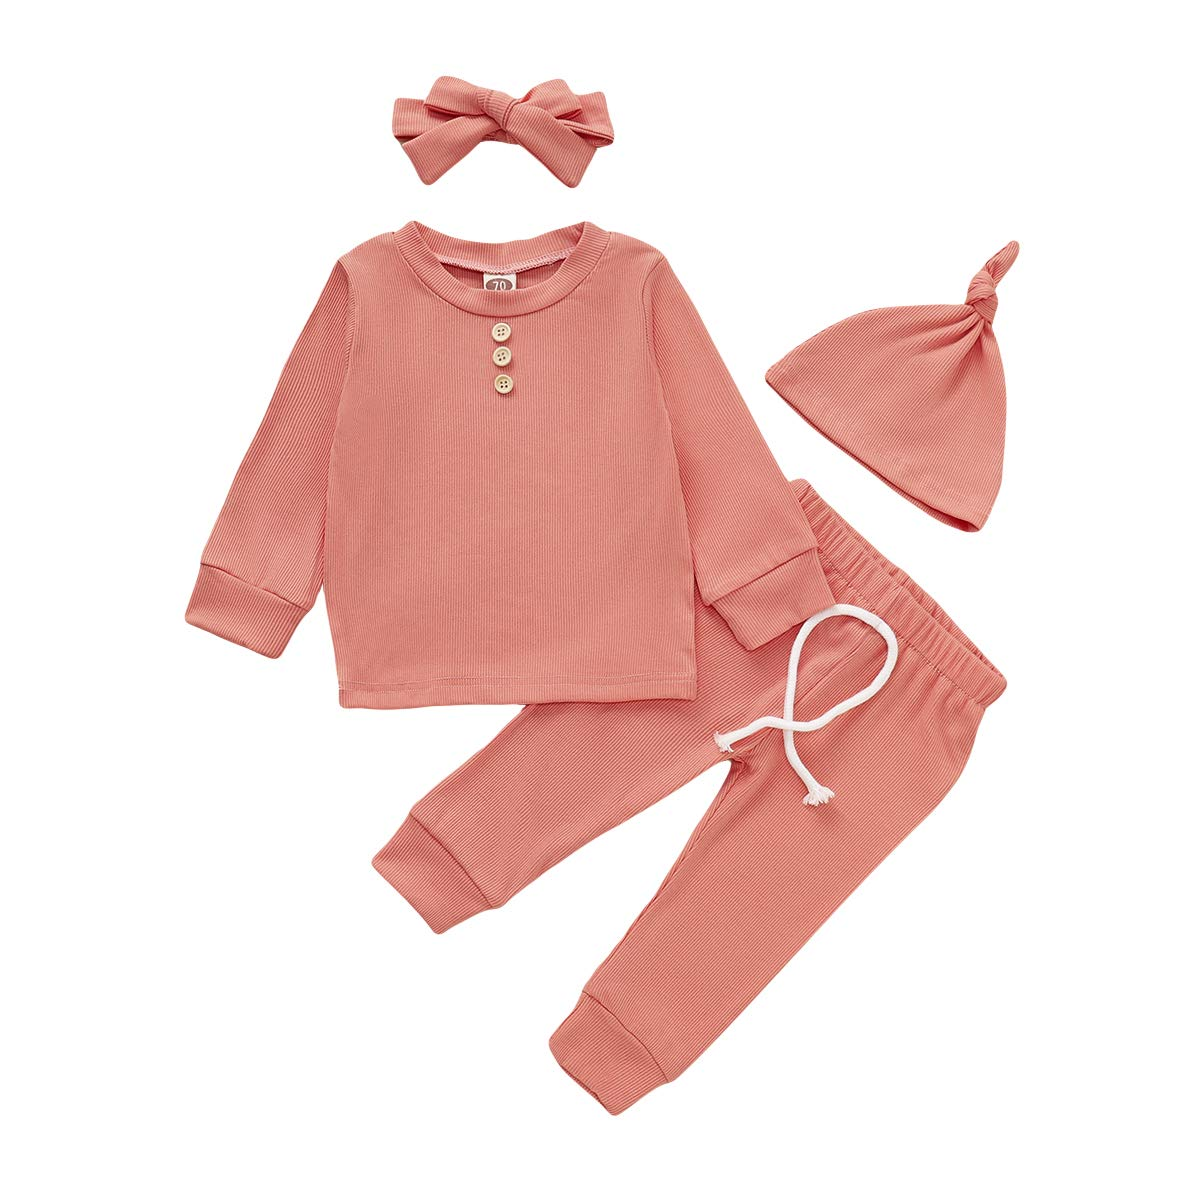 Baby Girl Clothes Ruffle Hoodie Tops Sweatsuit and Pants Solid Color Outfit 2Pcs Cotton Clothing Set